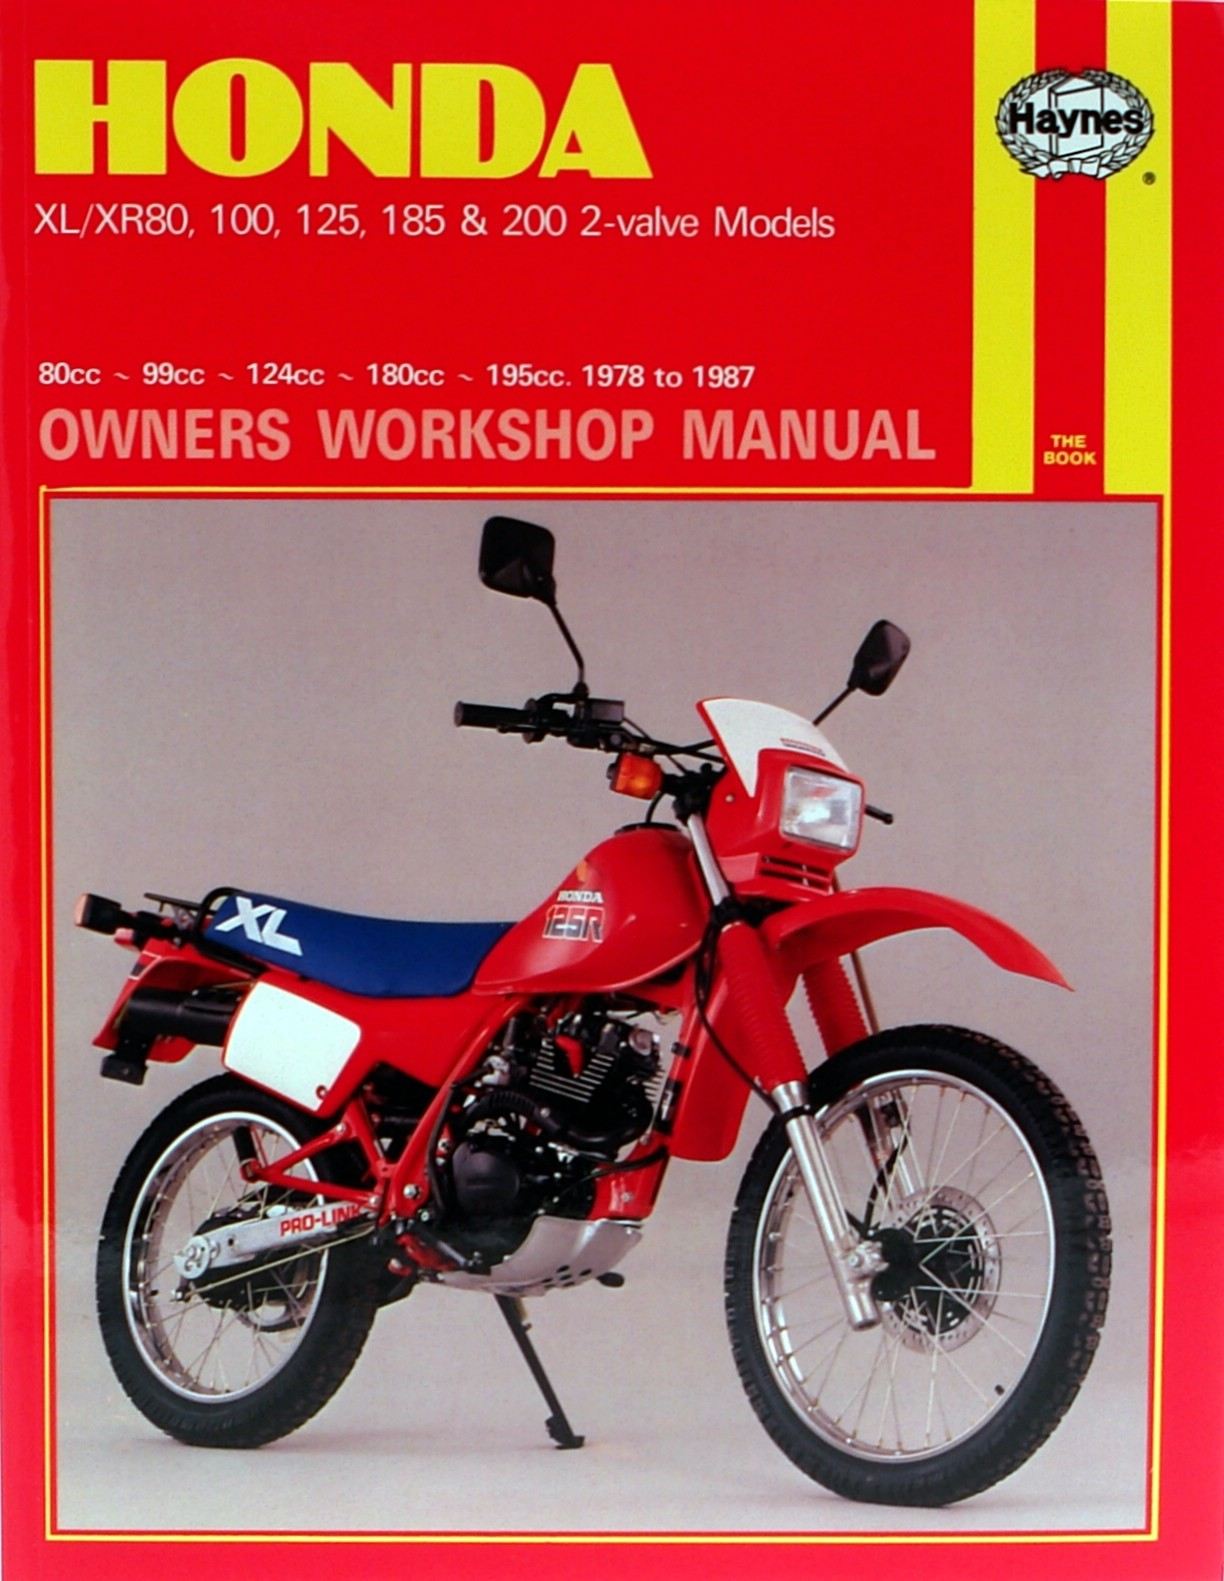 haynes manual fits honda xl100 xl125 xl185 xr80 xr200 78. Black Bedroom Furniture Sets. Home Design Ideas